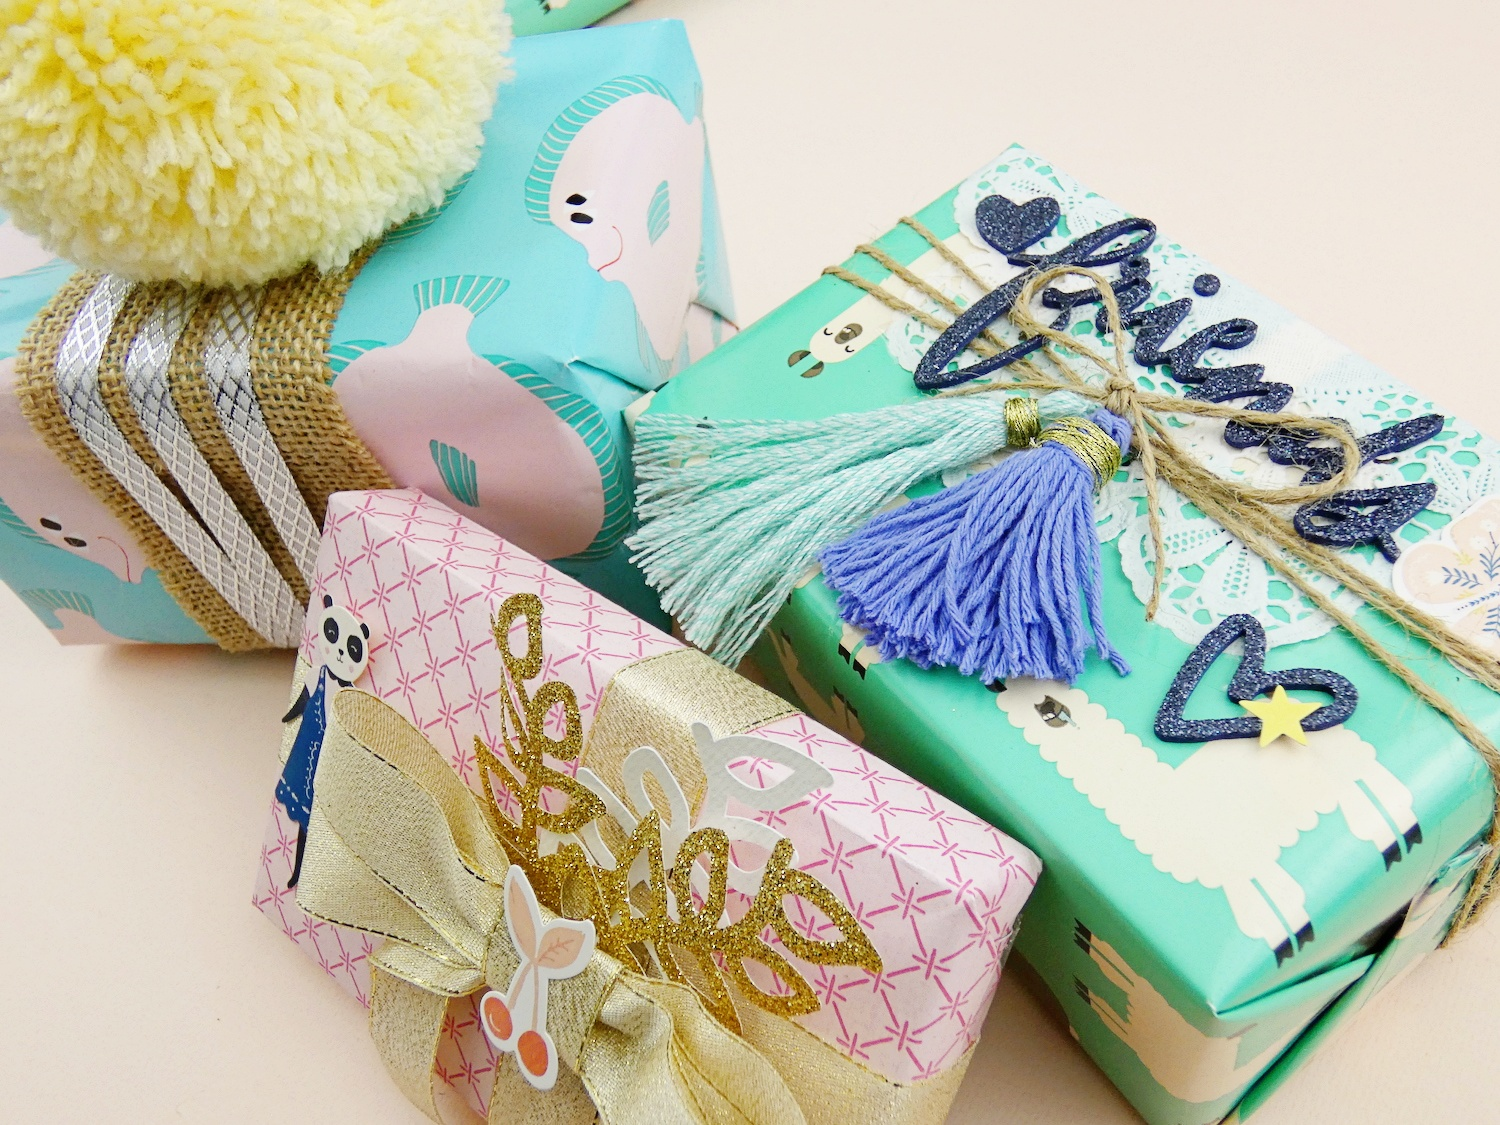 DIY Gift Wrap by Soraya Maes for We R Memory Keepers